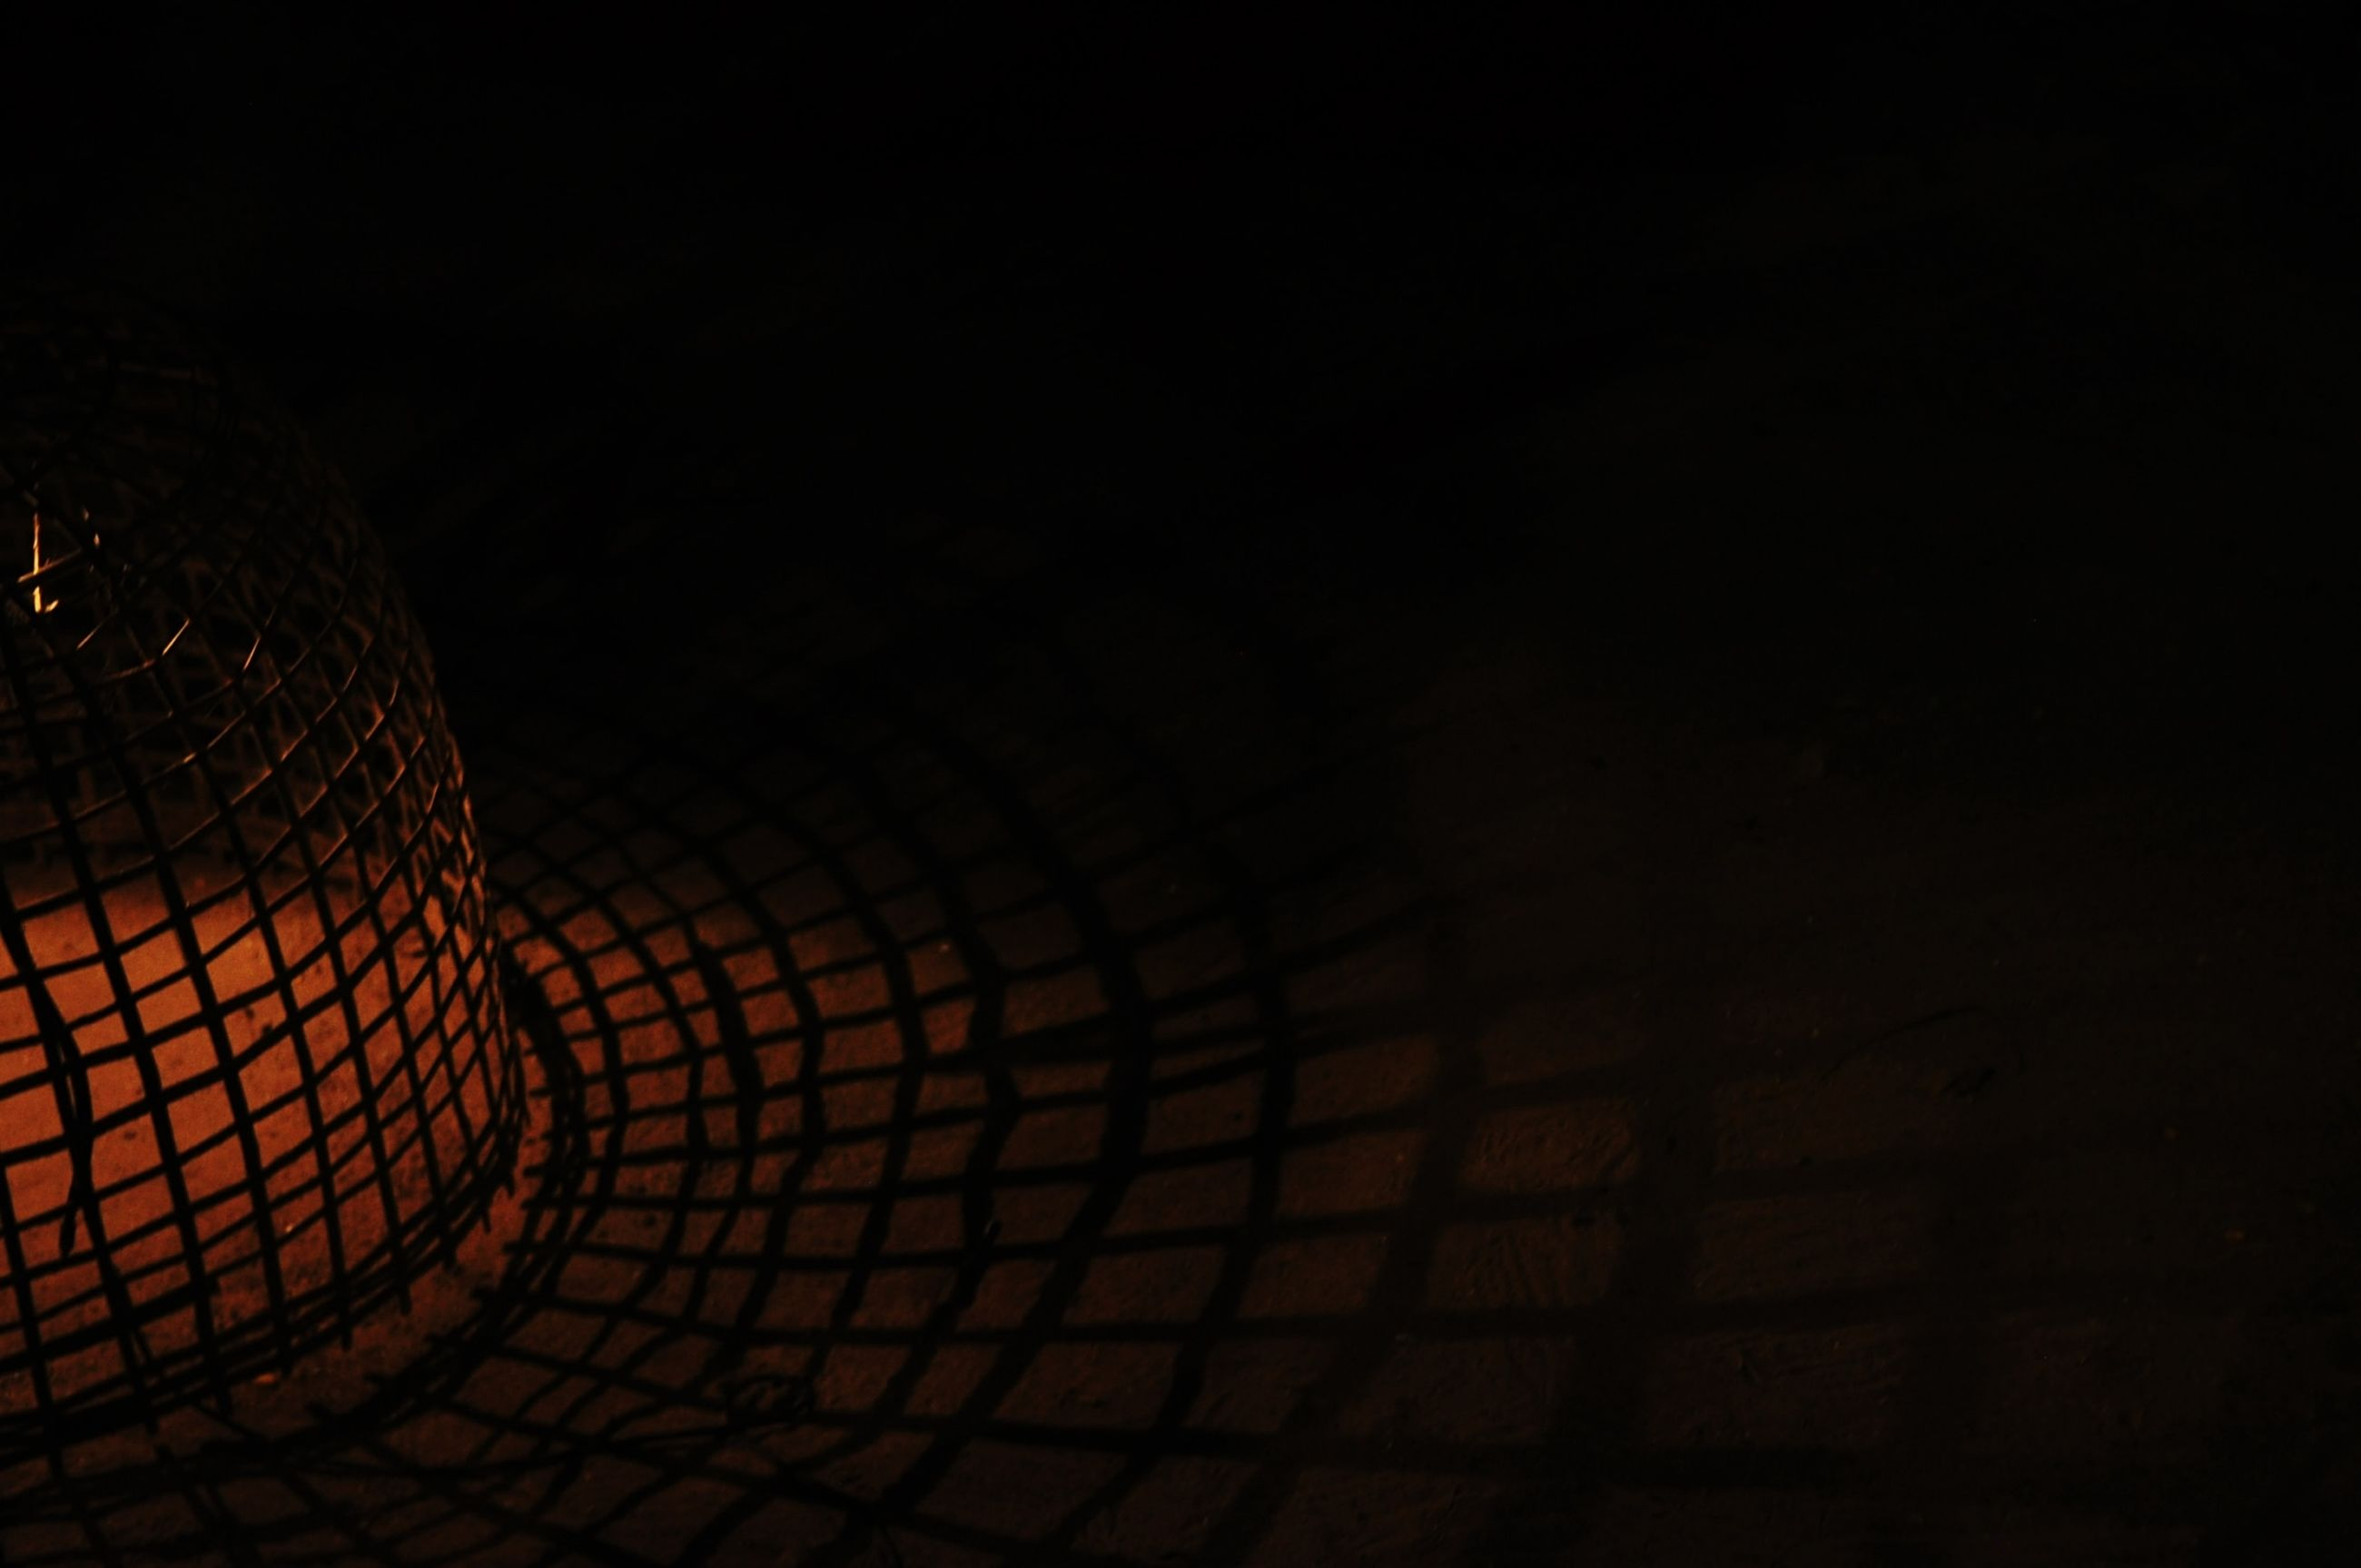 darkness, light, night, reflection, circle, no people, dark, line, copy space, pattern, black, yellow, wire mesh, wire, illuminated, indoors